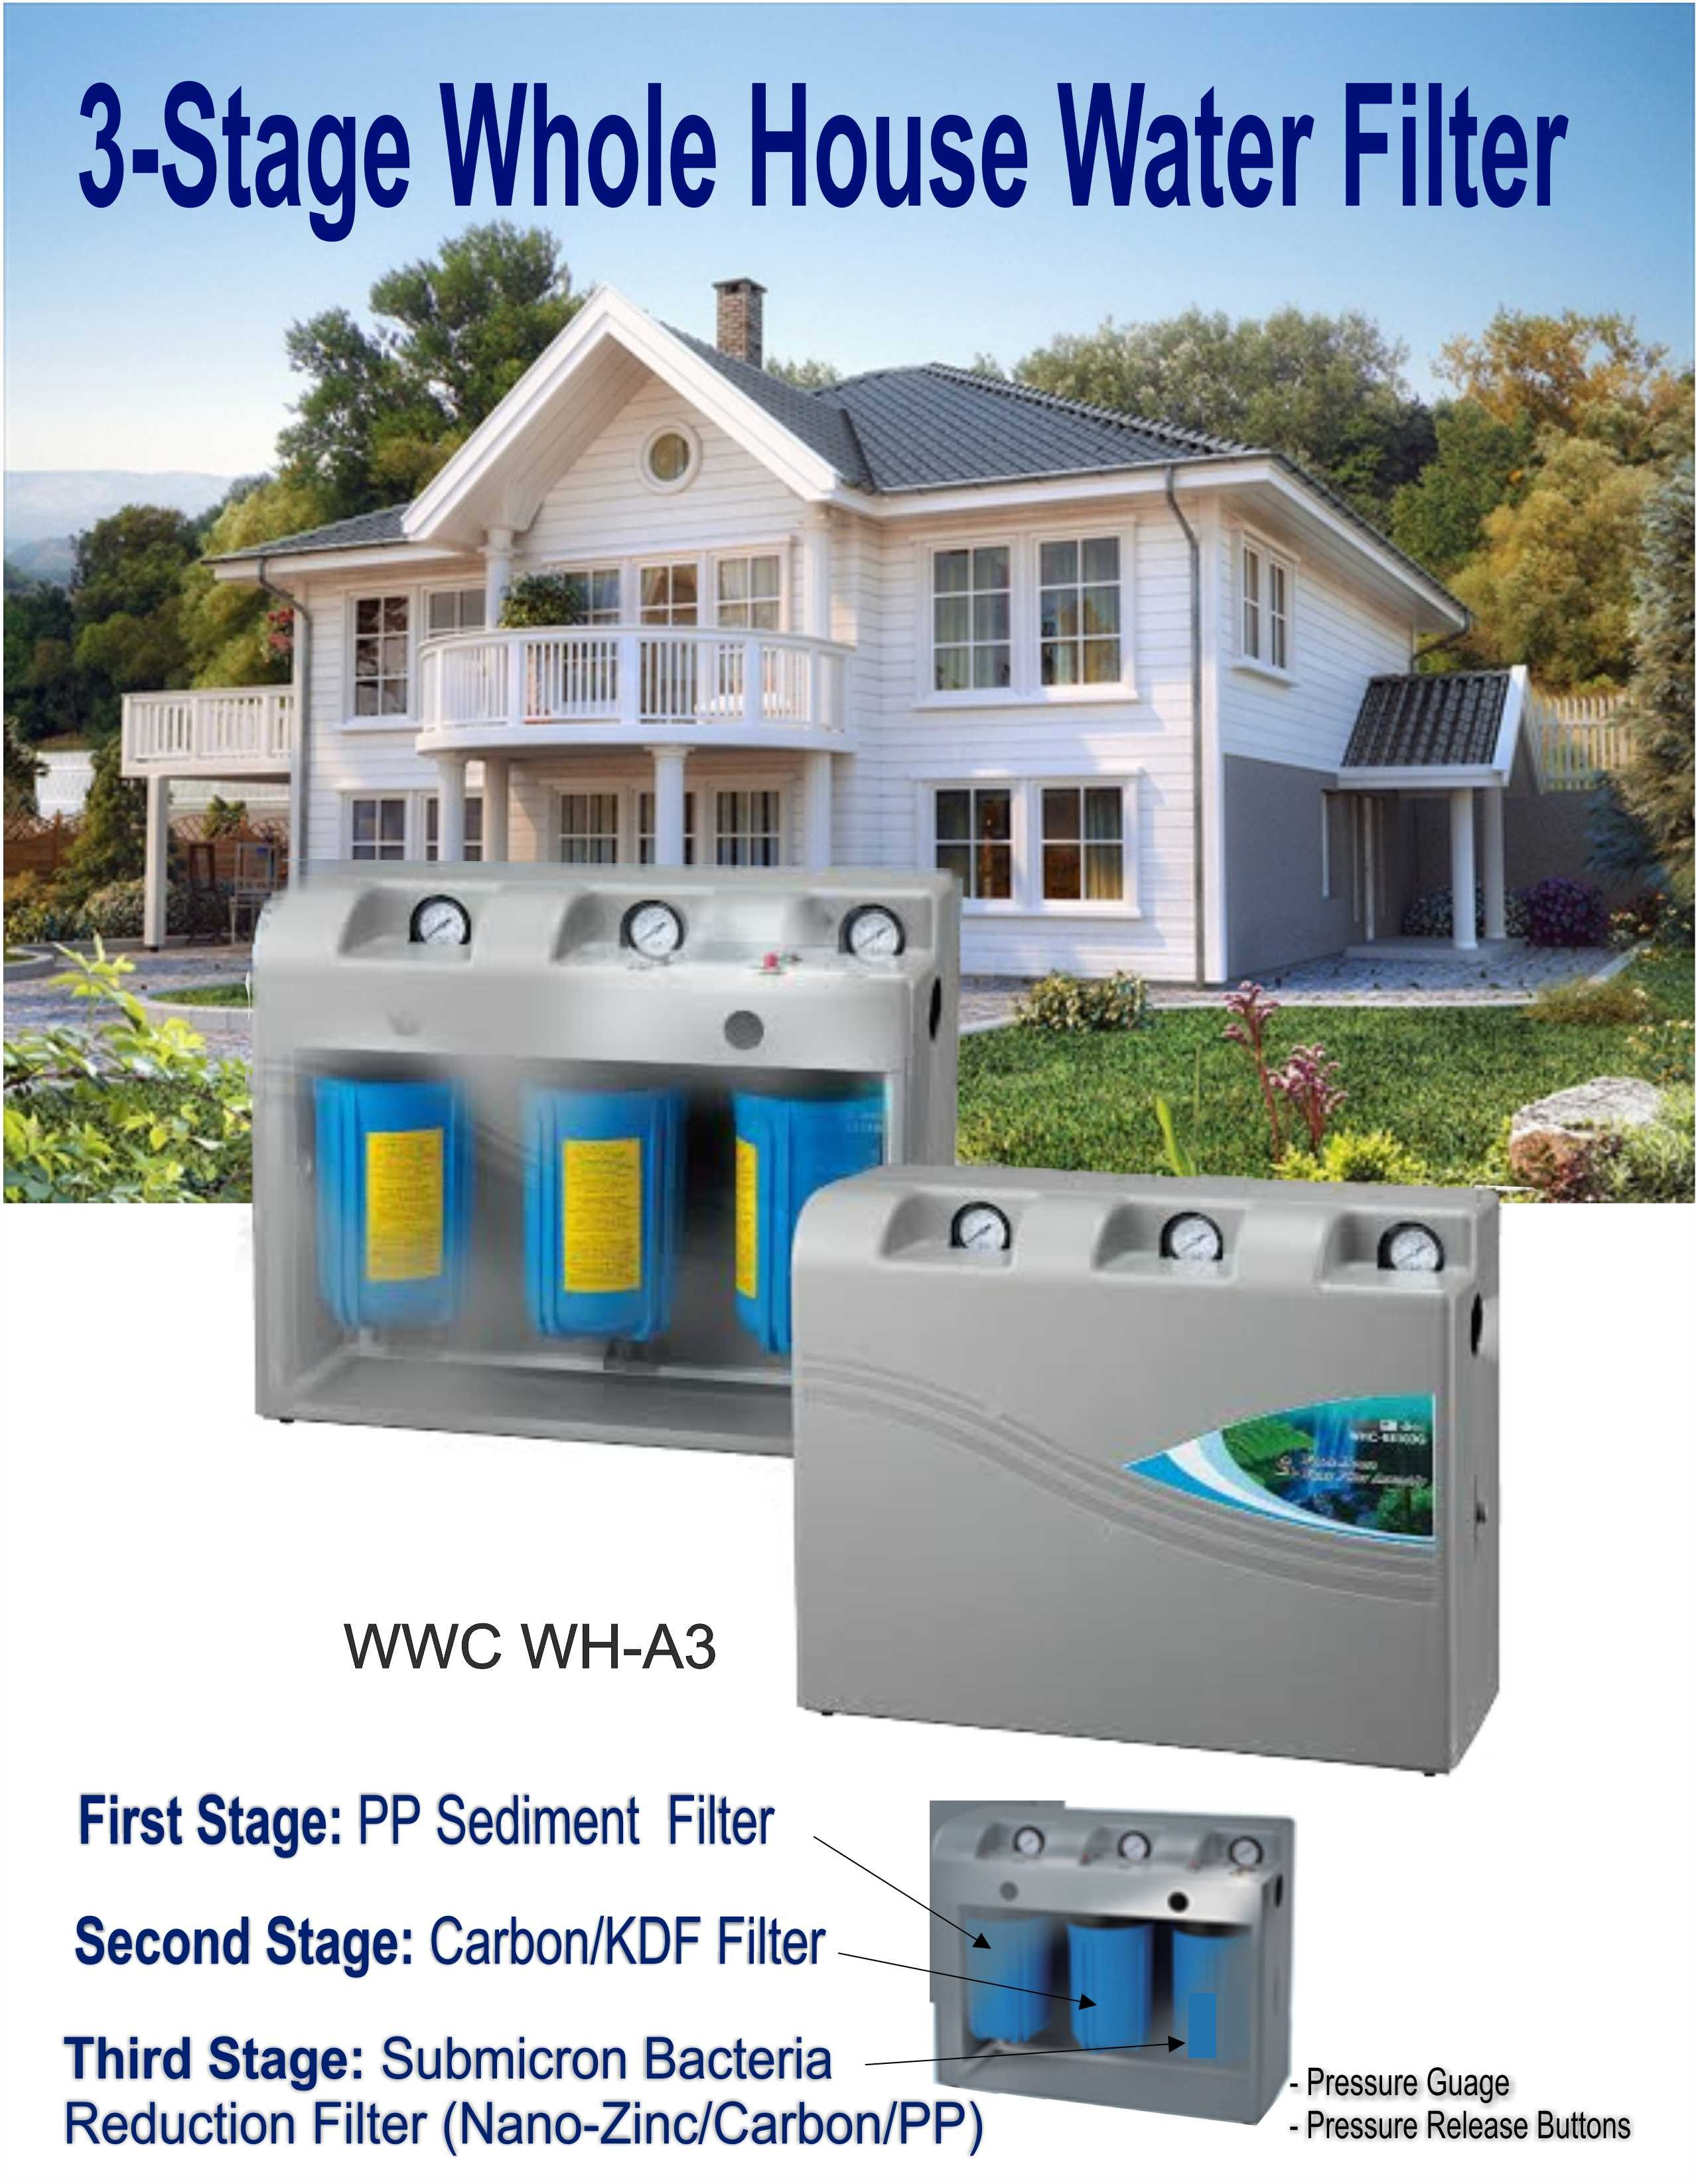 Aquanator Whole House Water Filter (Housing)